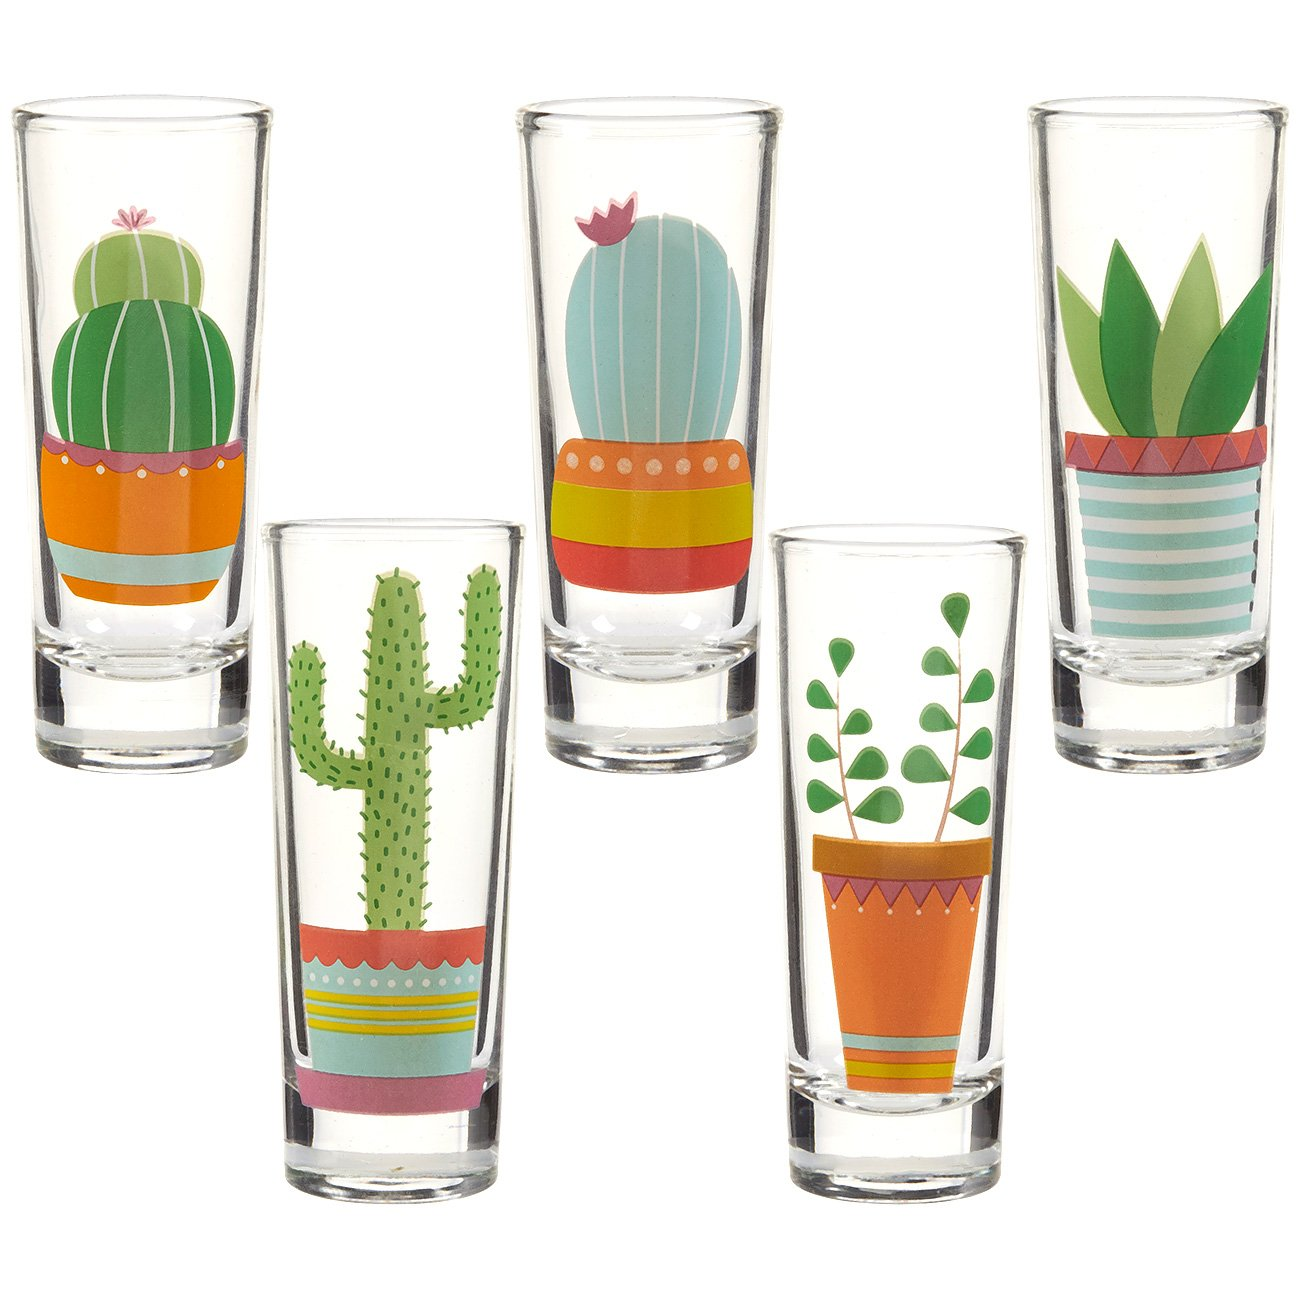 Party Shot Glasses - Cactus Shot Glasses with Colorful Print for Cinco de Mayo Tequila Fiesta- Set of 5, 2 oz Each by Blue Panda